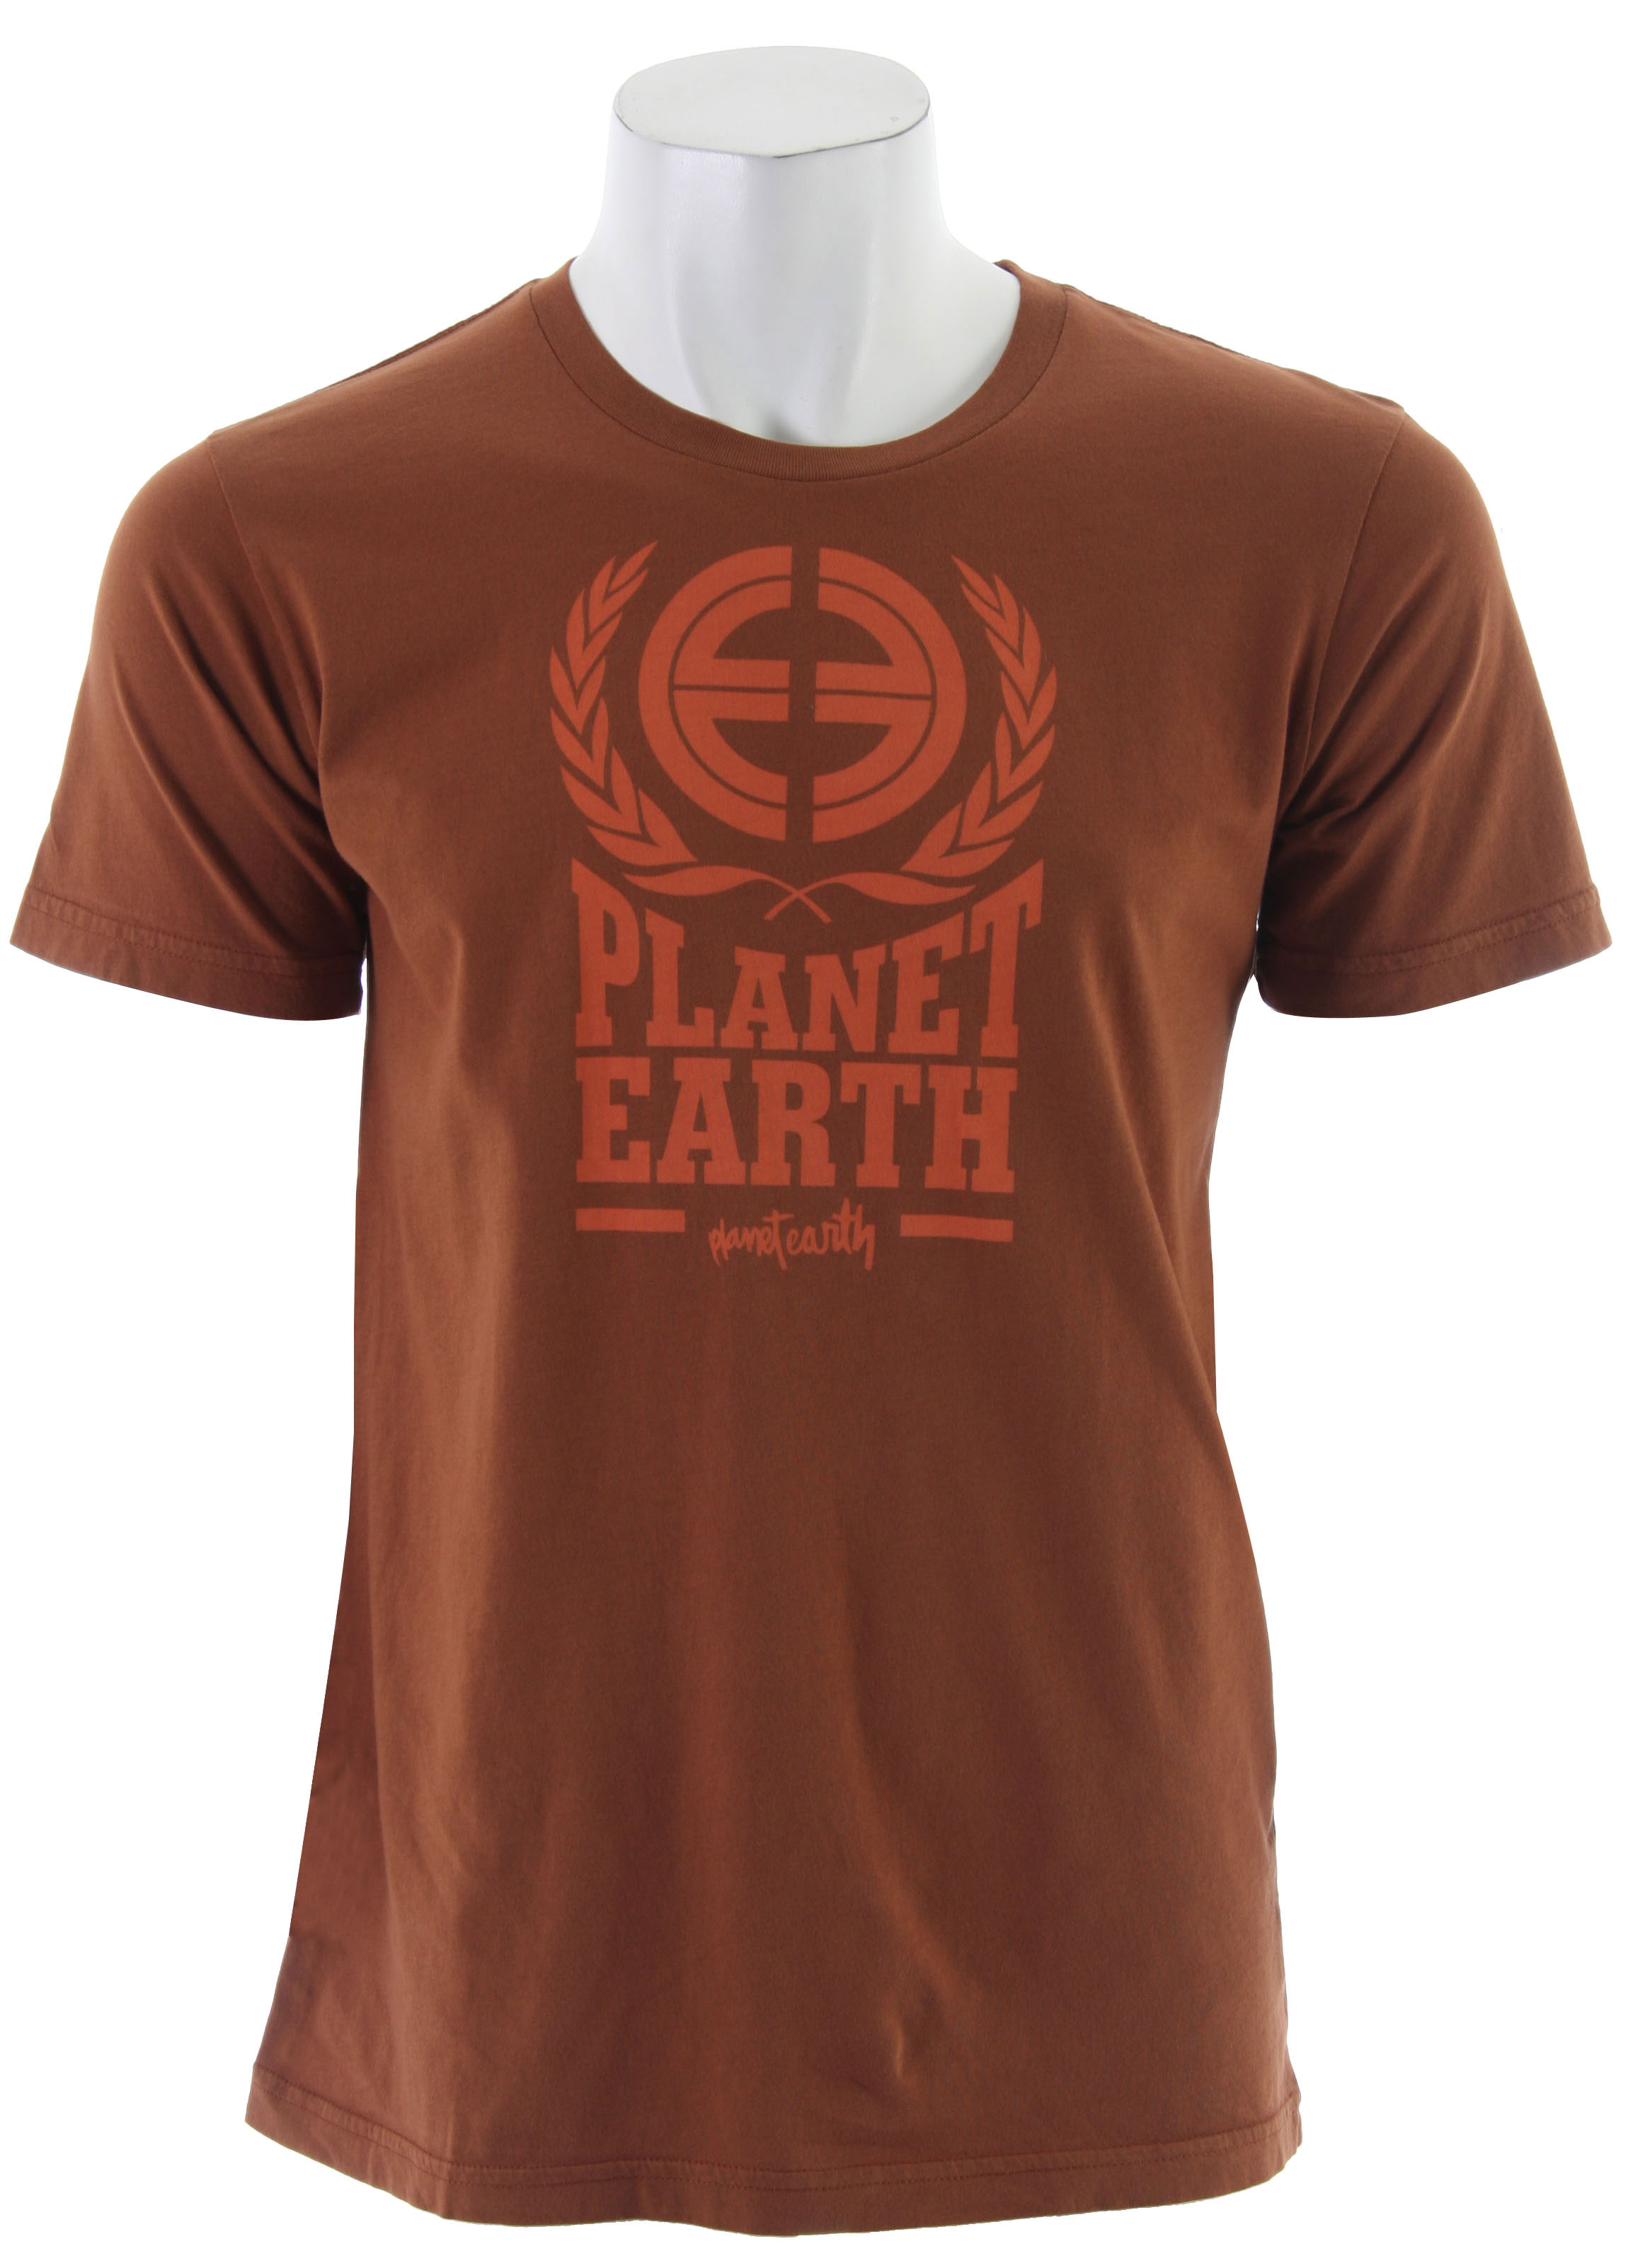 Key Features of The Planet Earth Logo S/S T-Shirt: Regular Fit Crew Neck Short Sleeve - $9.95